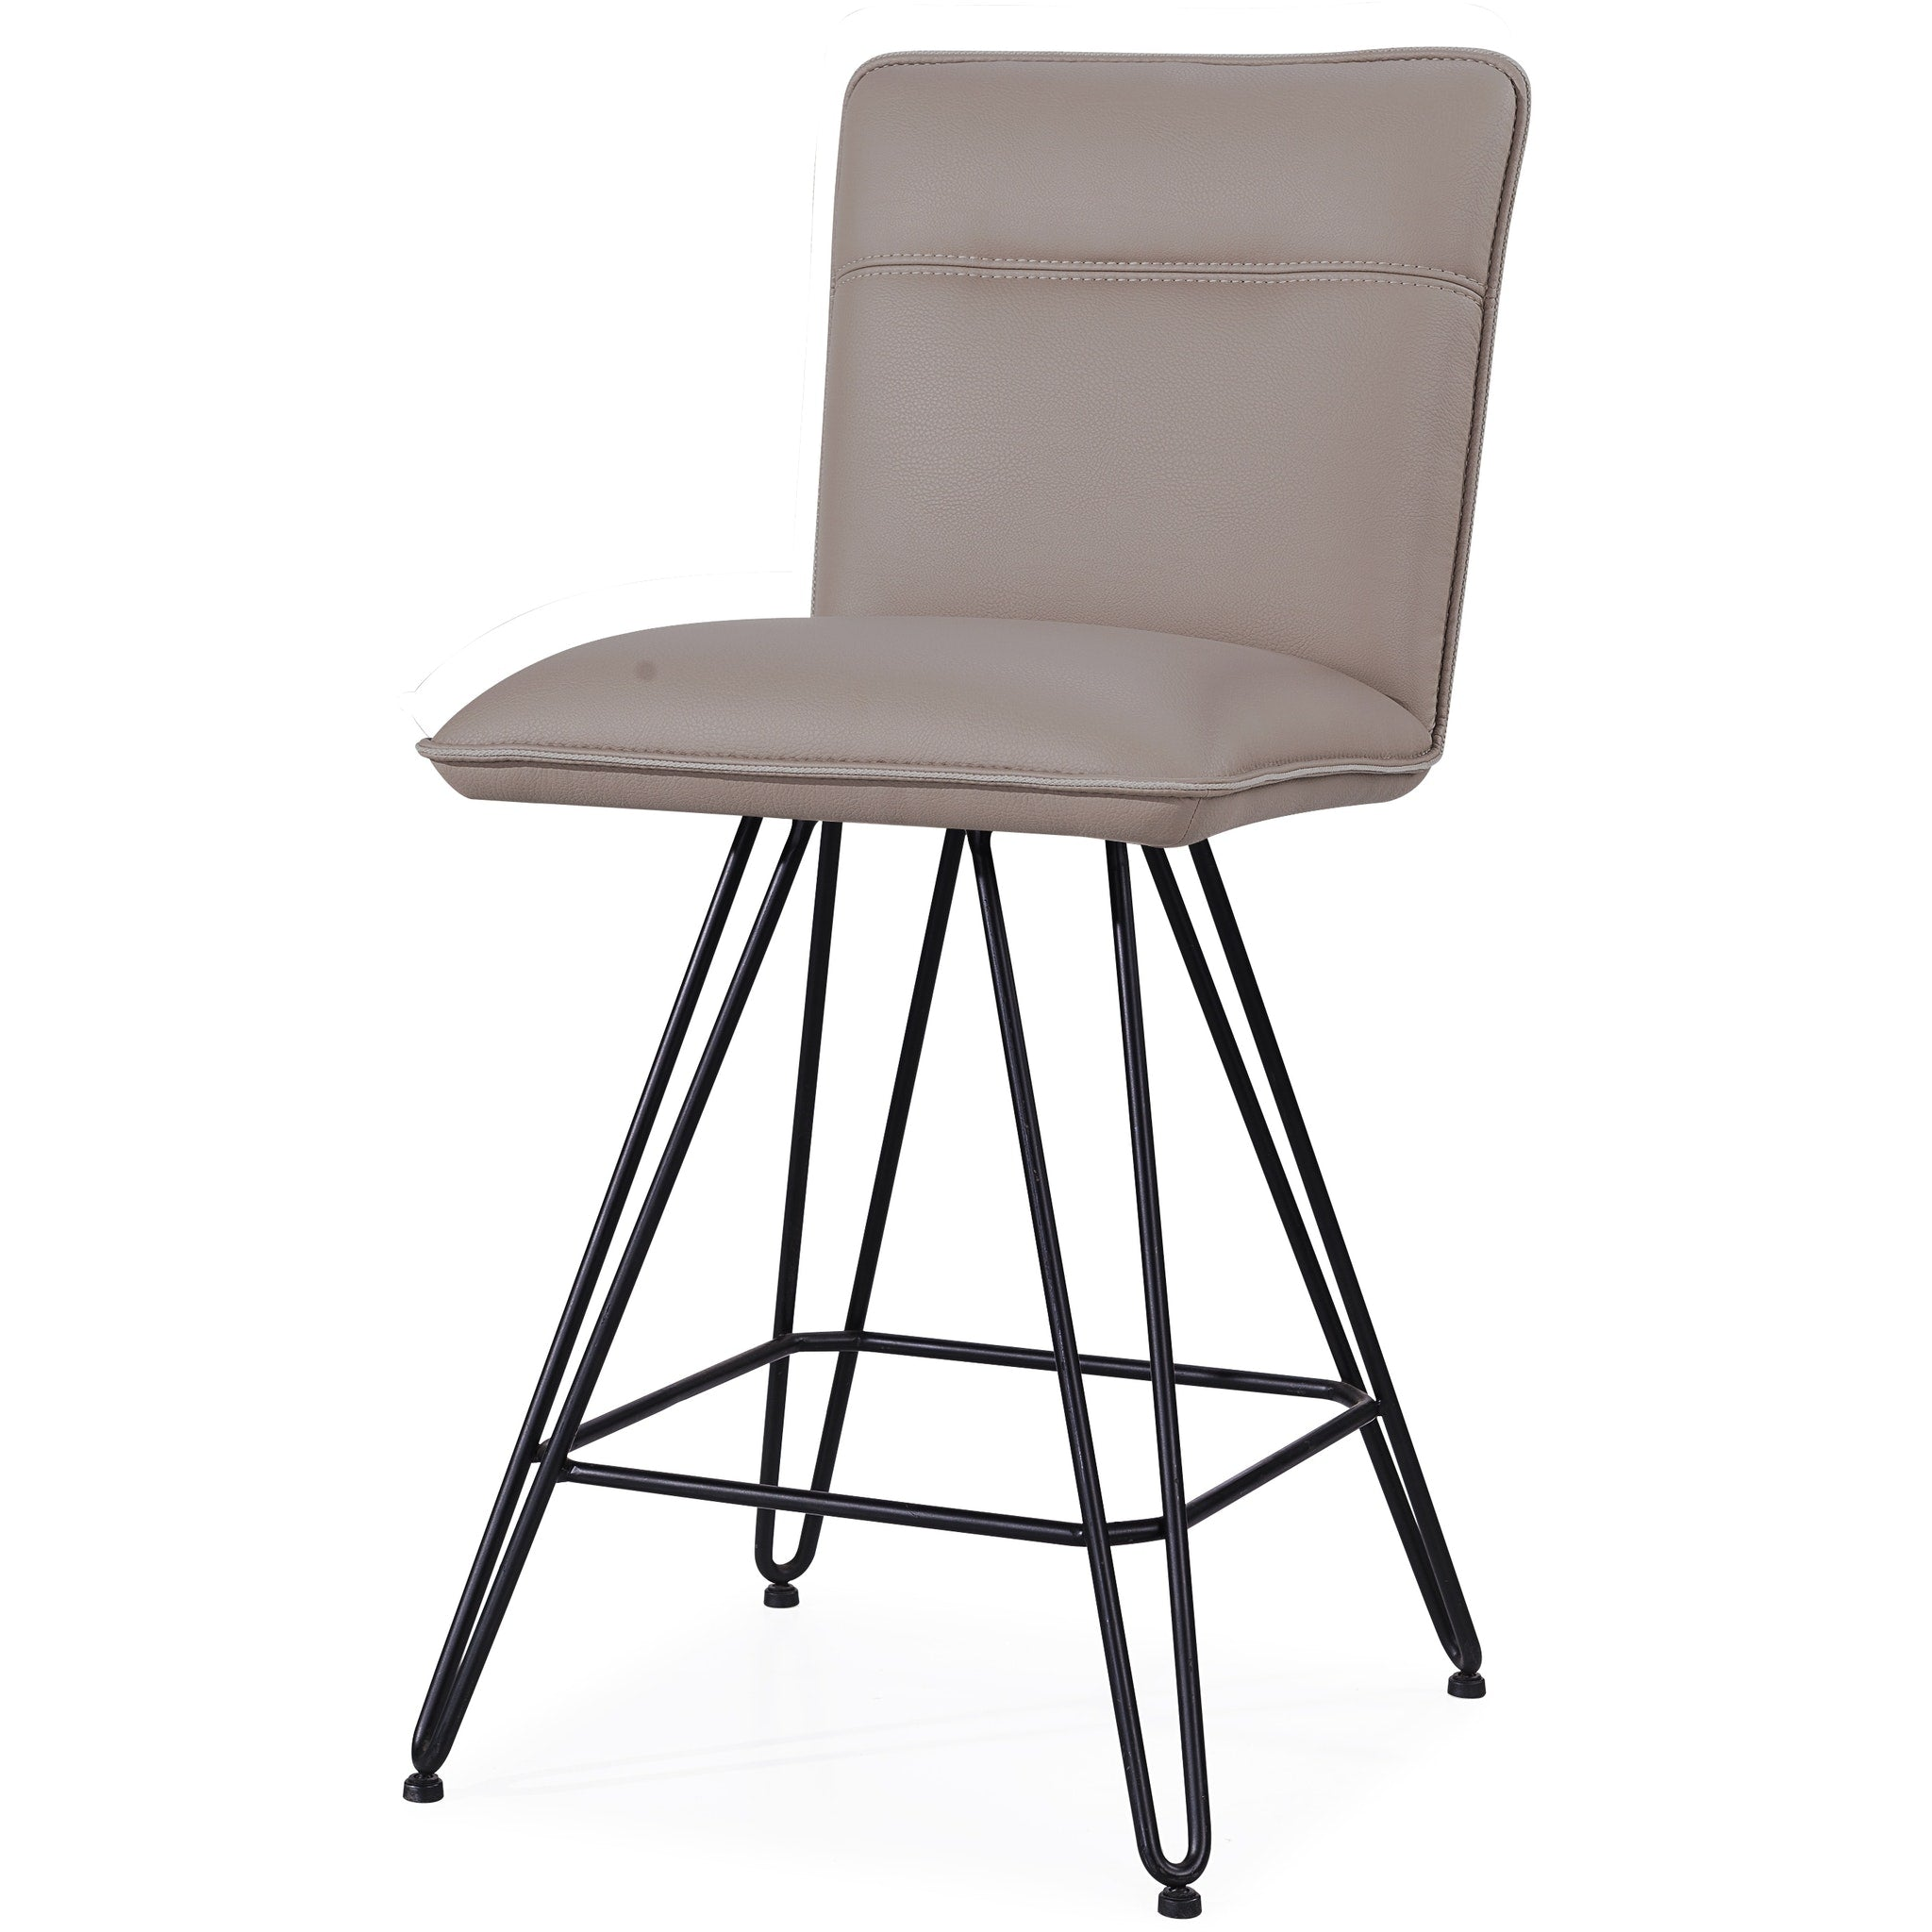 Demi Hairpin Leg Swivel Counter Stool in Taupe